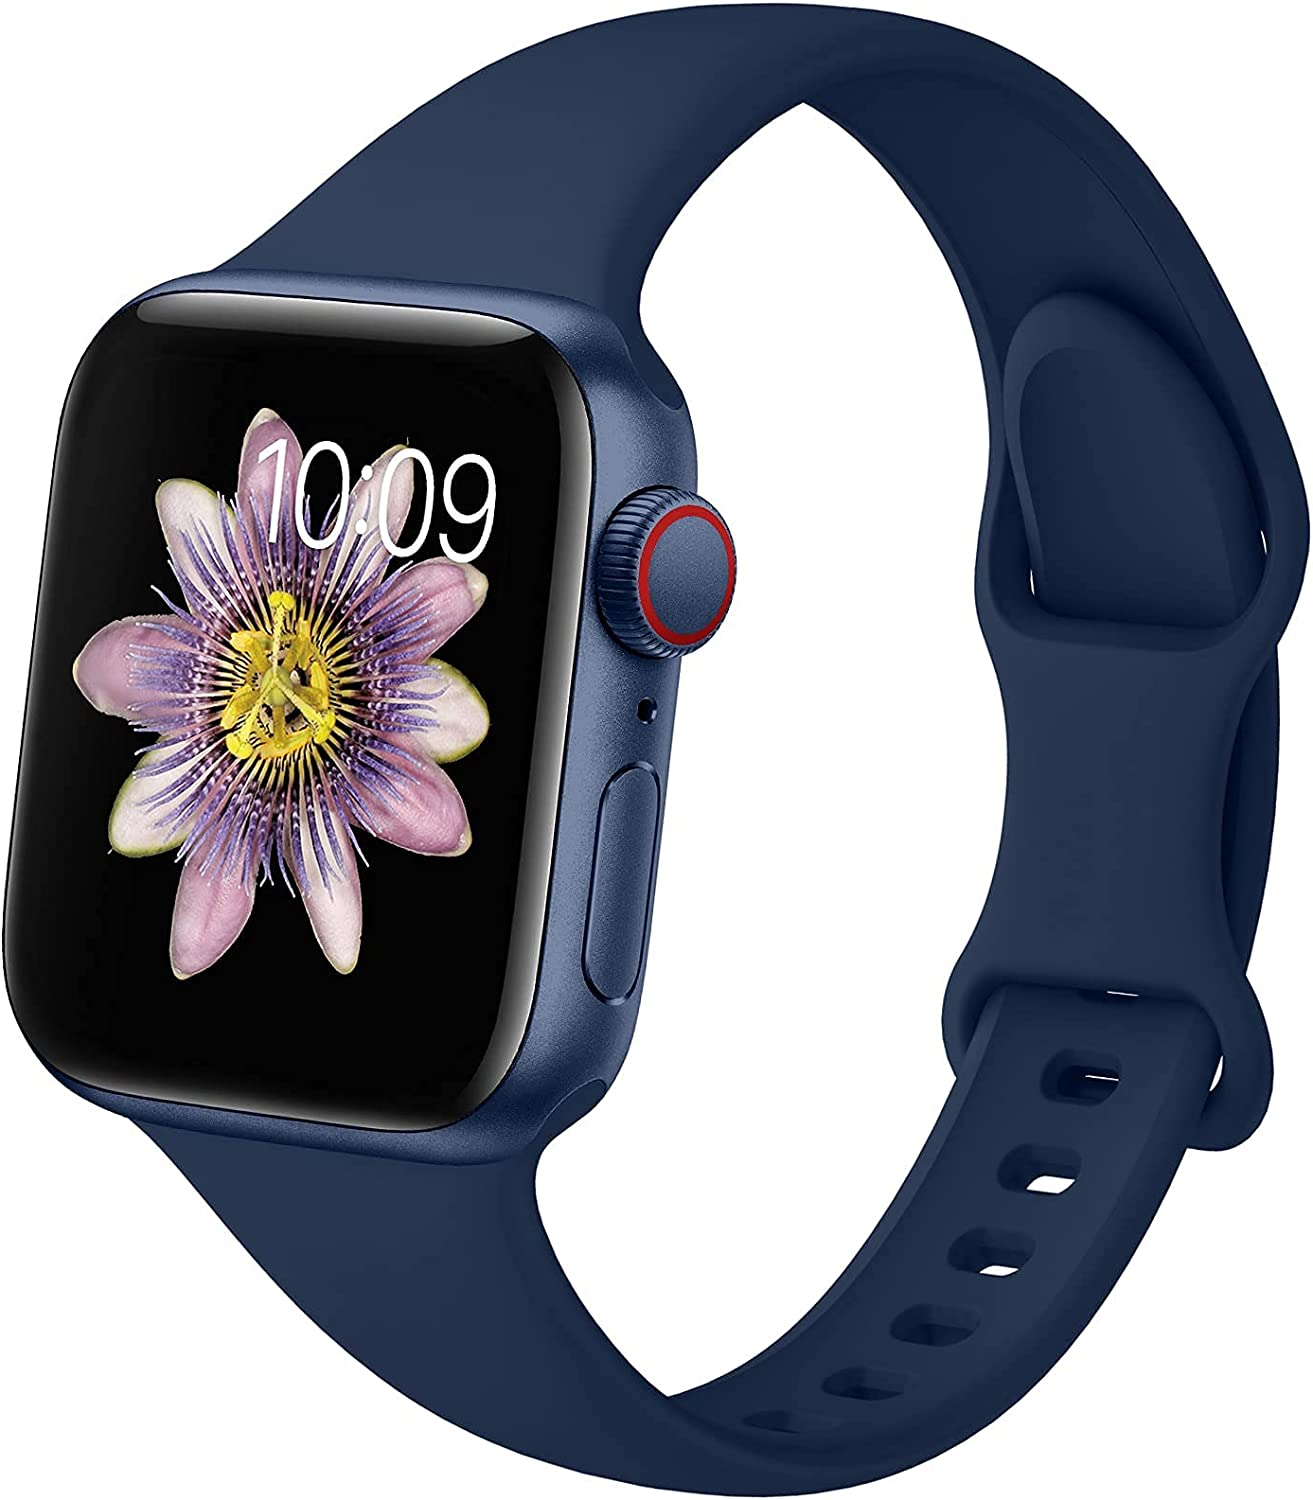 TreasureMax Slim Sport Bands Compatible with Apple Watch Band 38mm 40mm 42mm 44MM Men Women, Thin Silicone Band Narrow Replacement Strap Compatible for iWatch Serie 6 5 4 3 2 1 SE 38MM/40MM Navy Blue